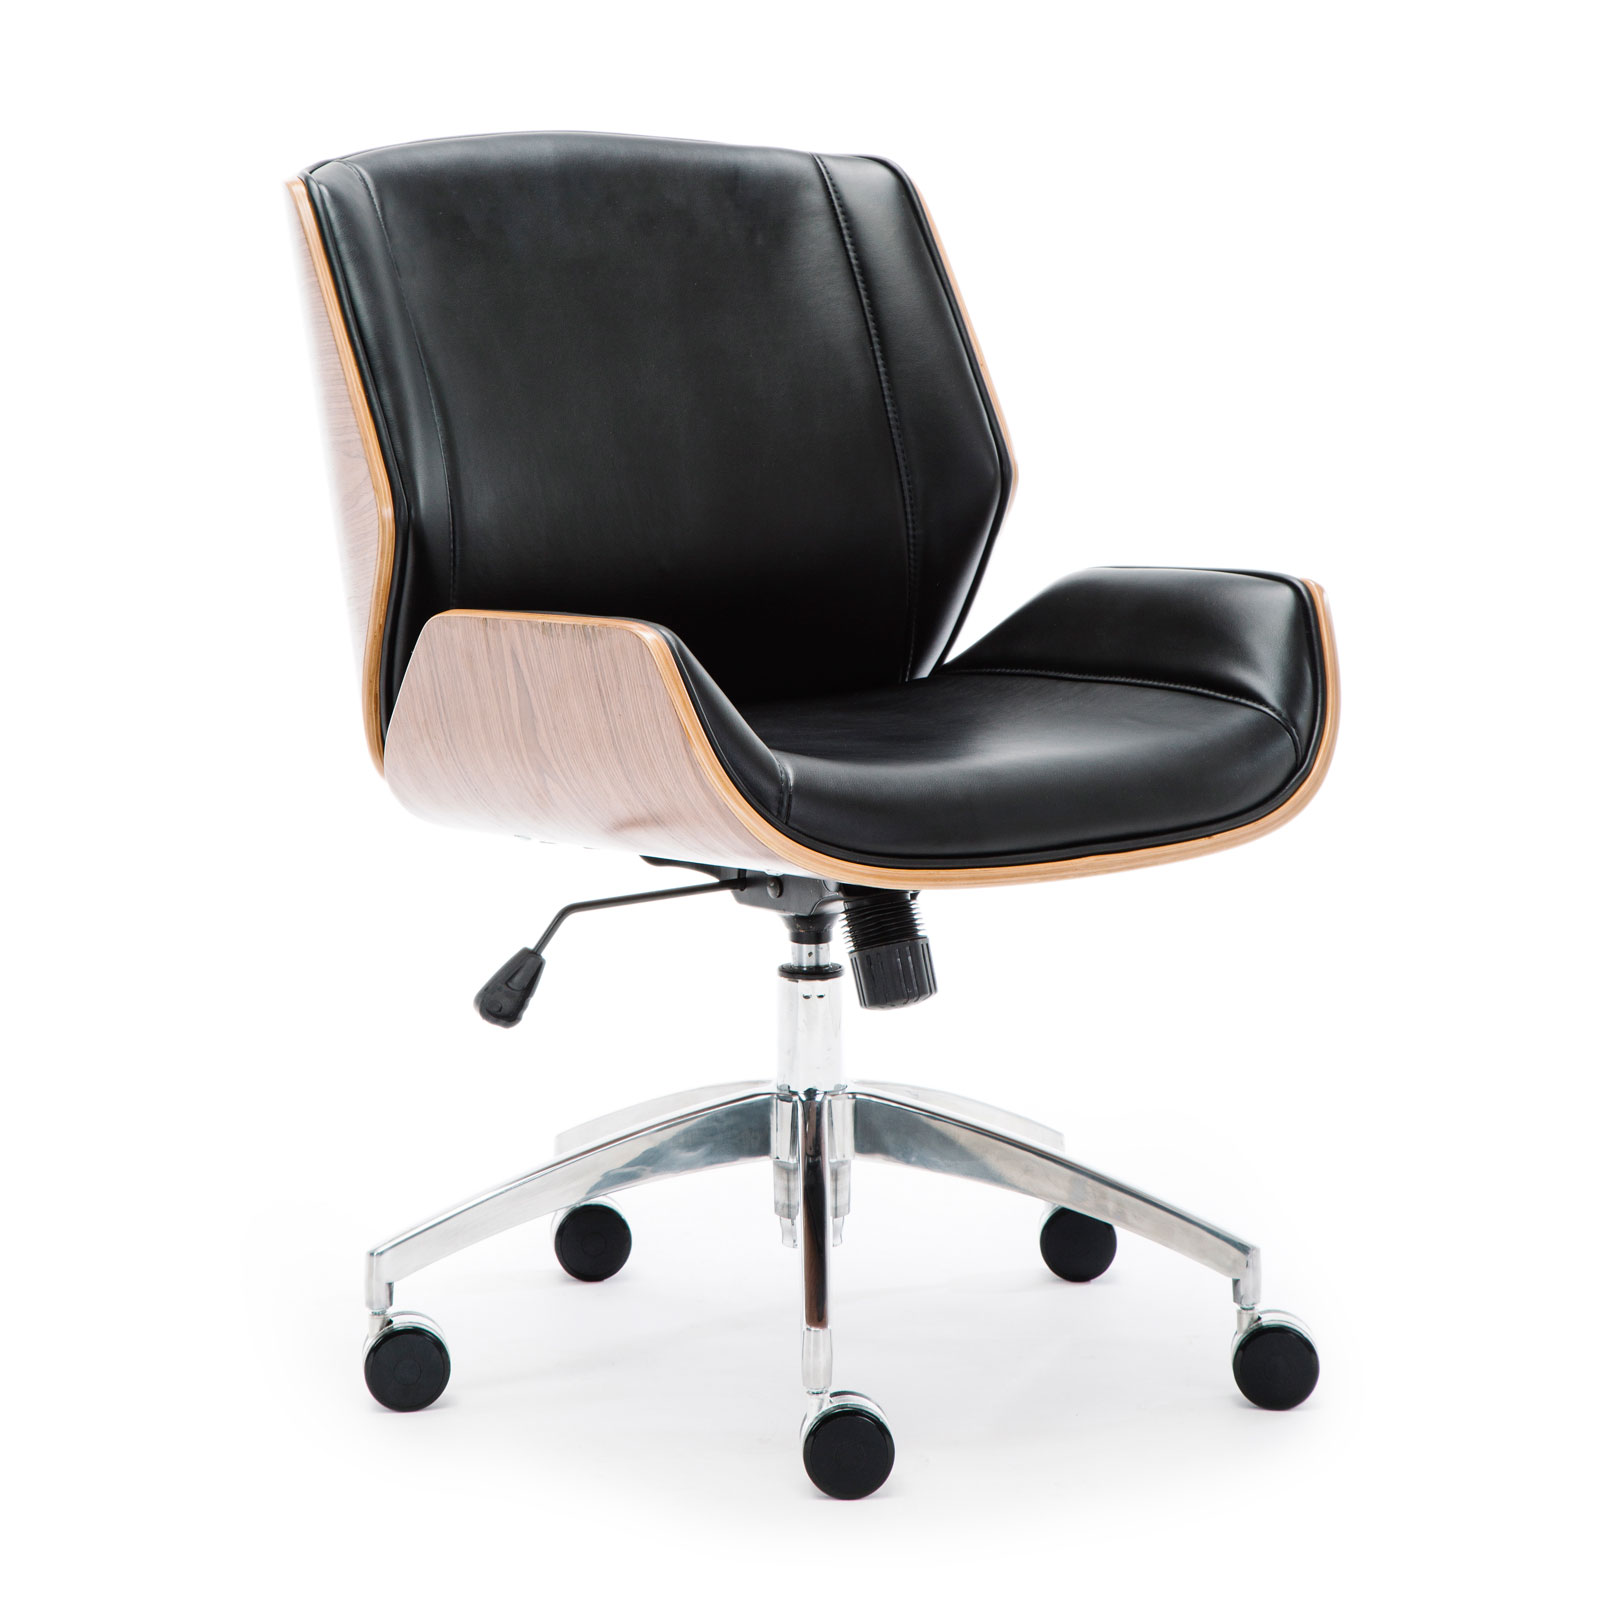 Wooden & PU Leather Office Chair Grosvenor Executive Chair - Walnut